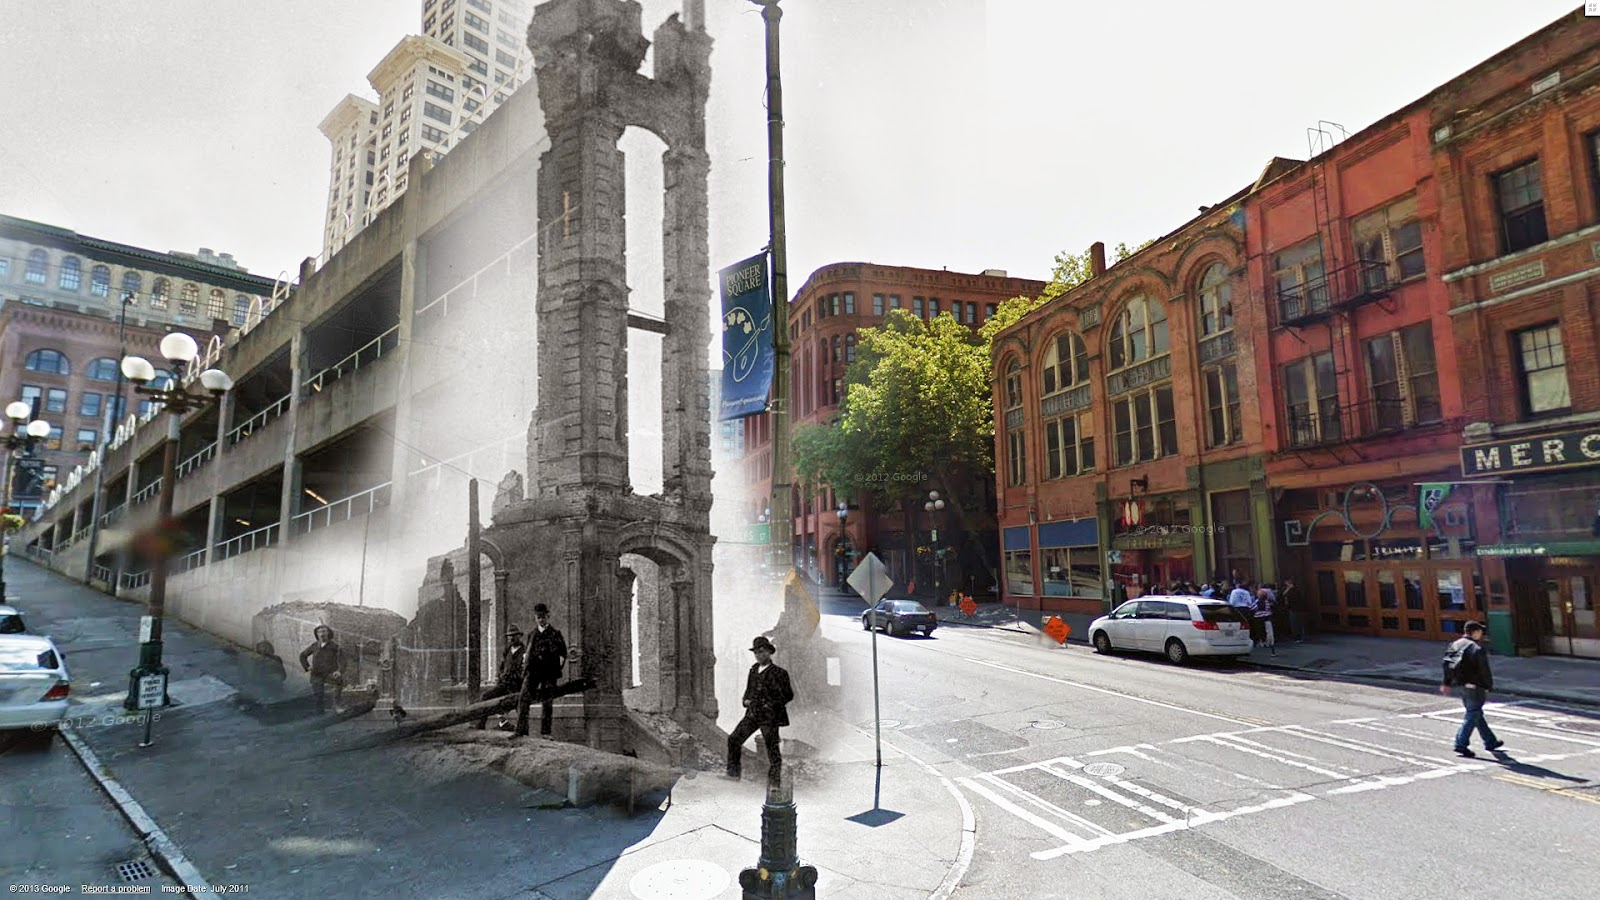 """The Occidental Hotel was a gorgeous building that stood where we find the 'sinking ship' parking garage today near Pioneer Square. The older photo dates from the mid 1880's. The Occidental only stood for only seven years. It was one of the many casualties of the Great Fire of 1889. The sad remnants of the façade and entryway line up pretty well with the parking garage here."" (Courtesy of Clayton Kauzlaric)"